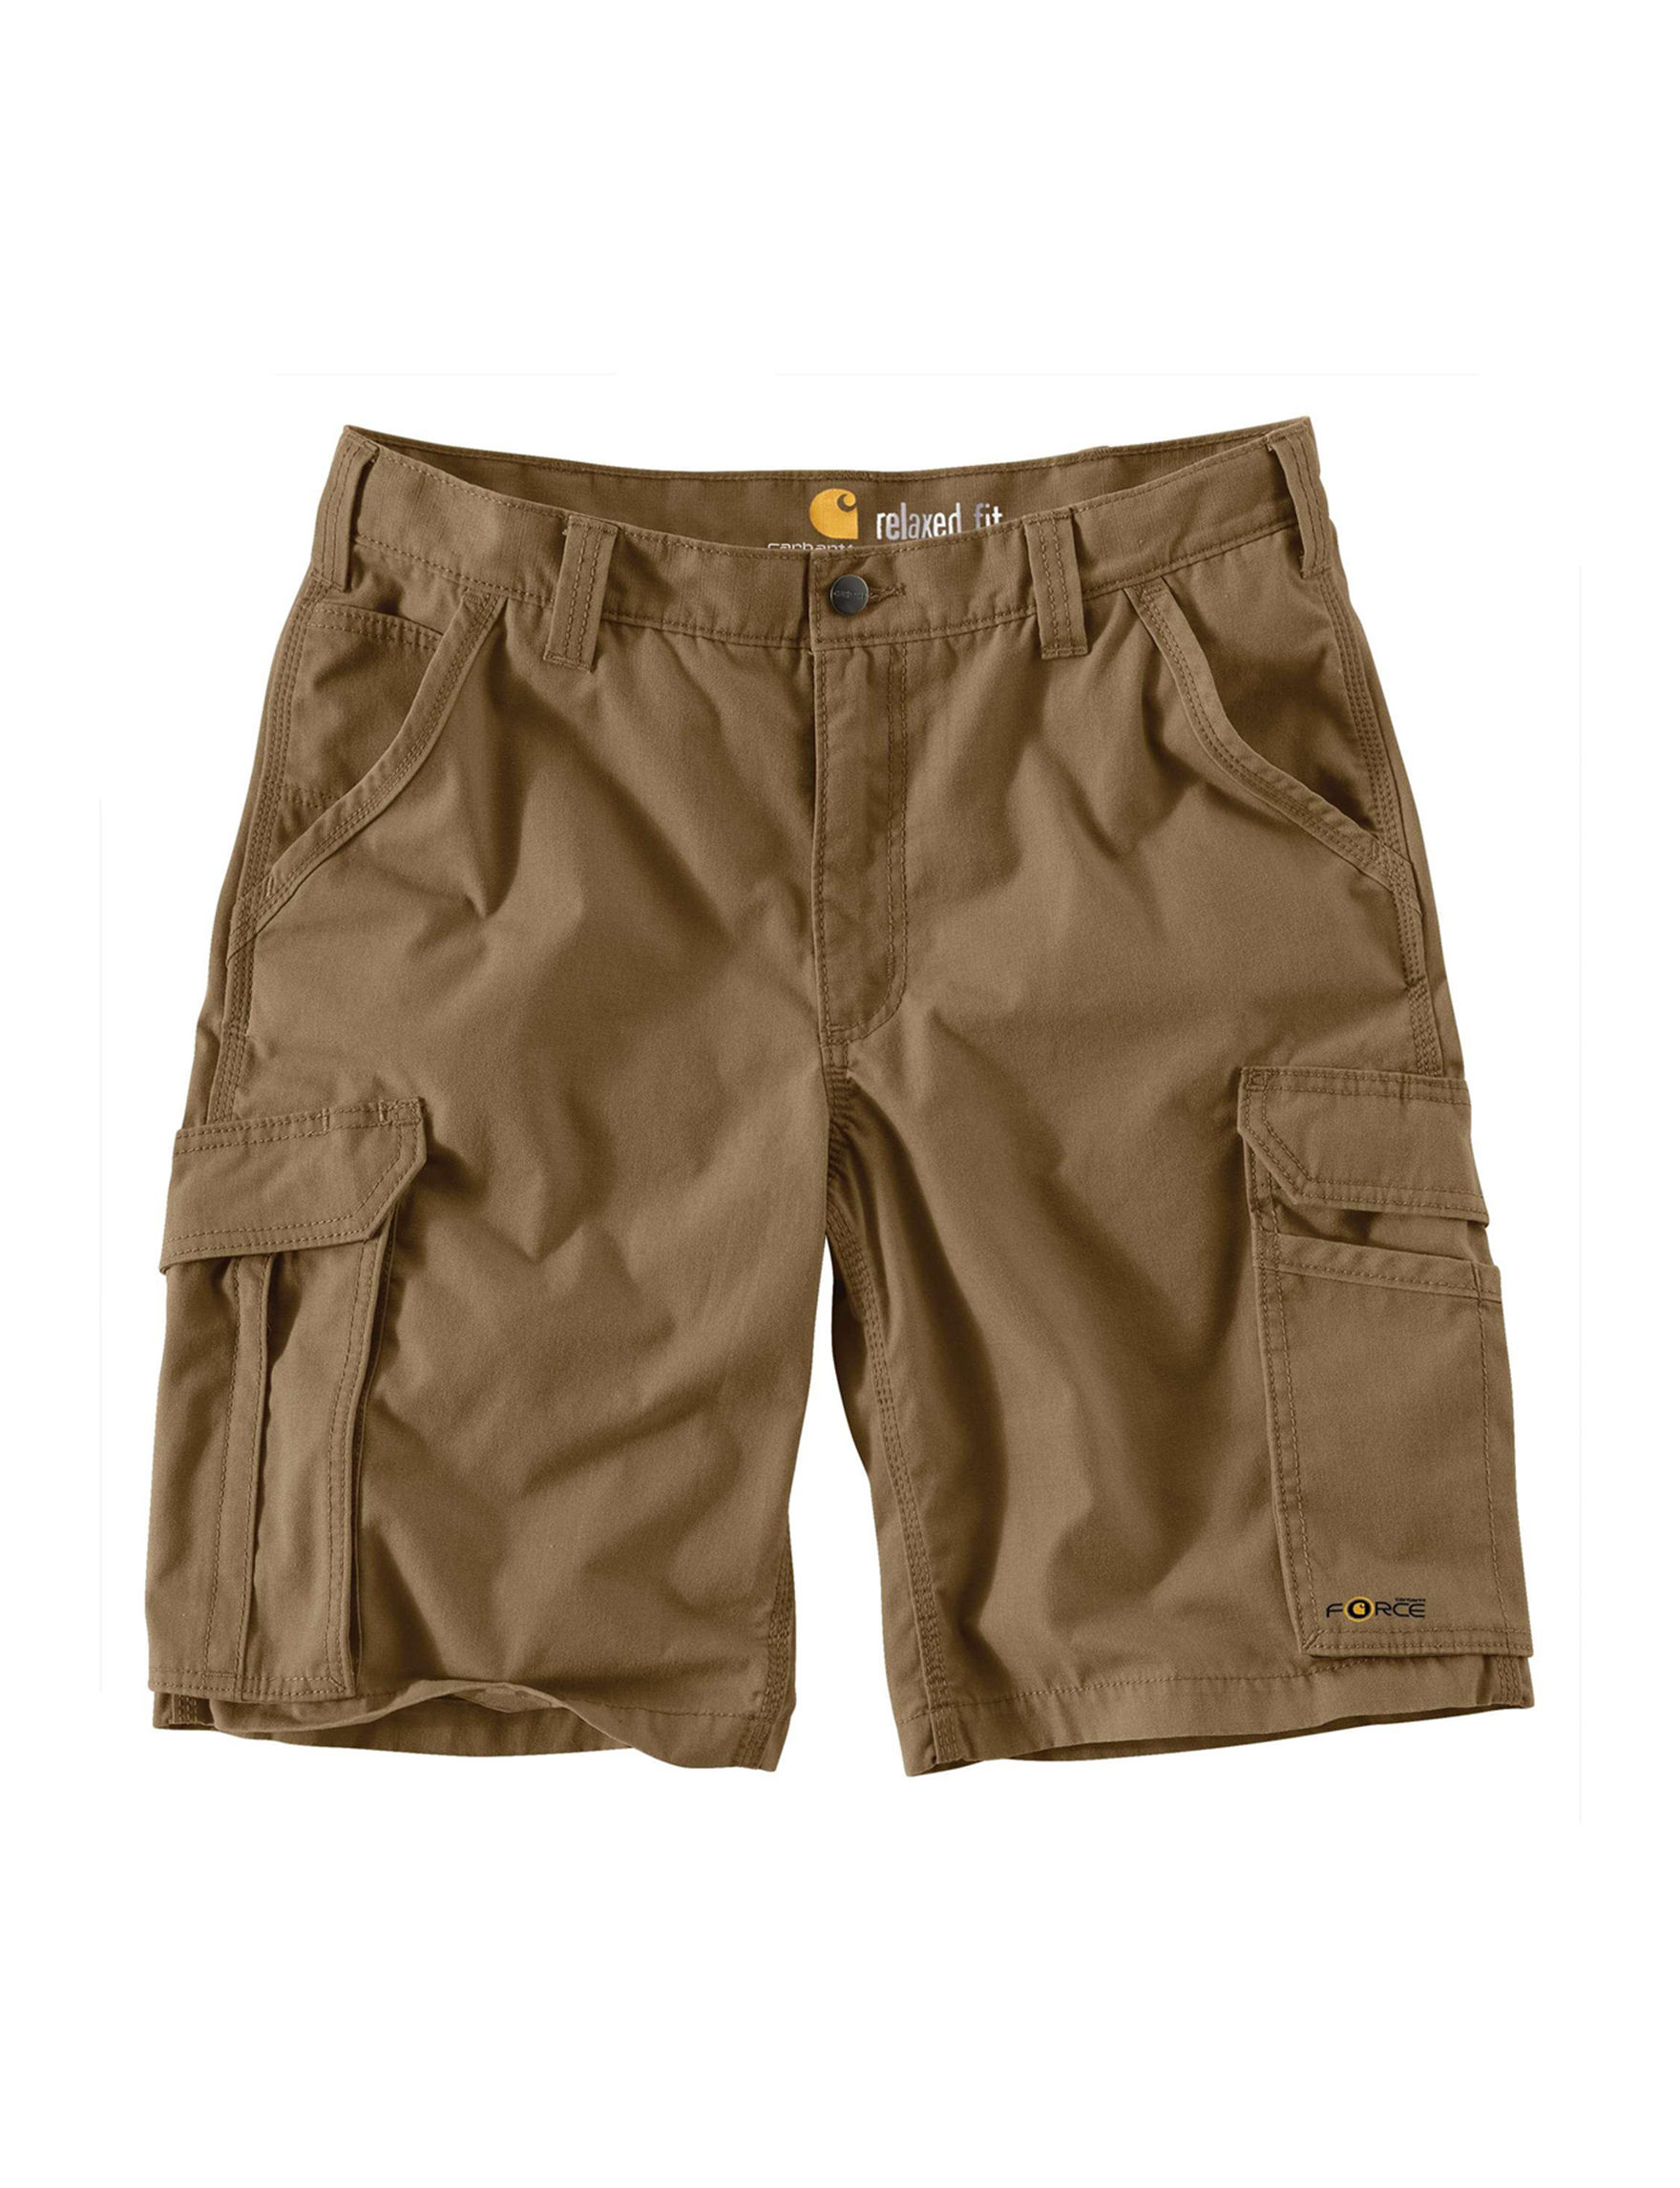 00d958094 Carhartt Force Tappen Cargo Shorts